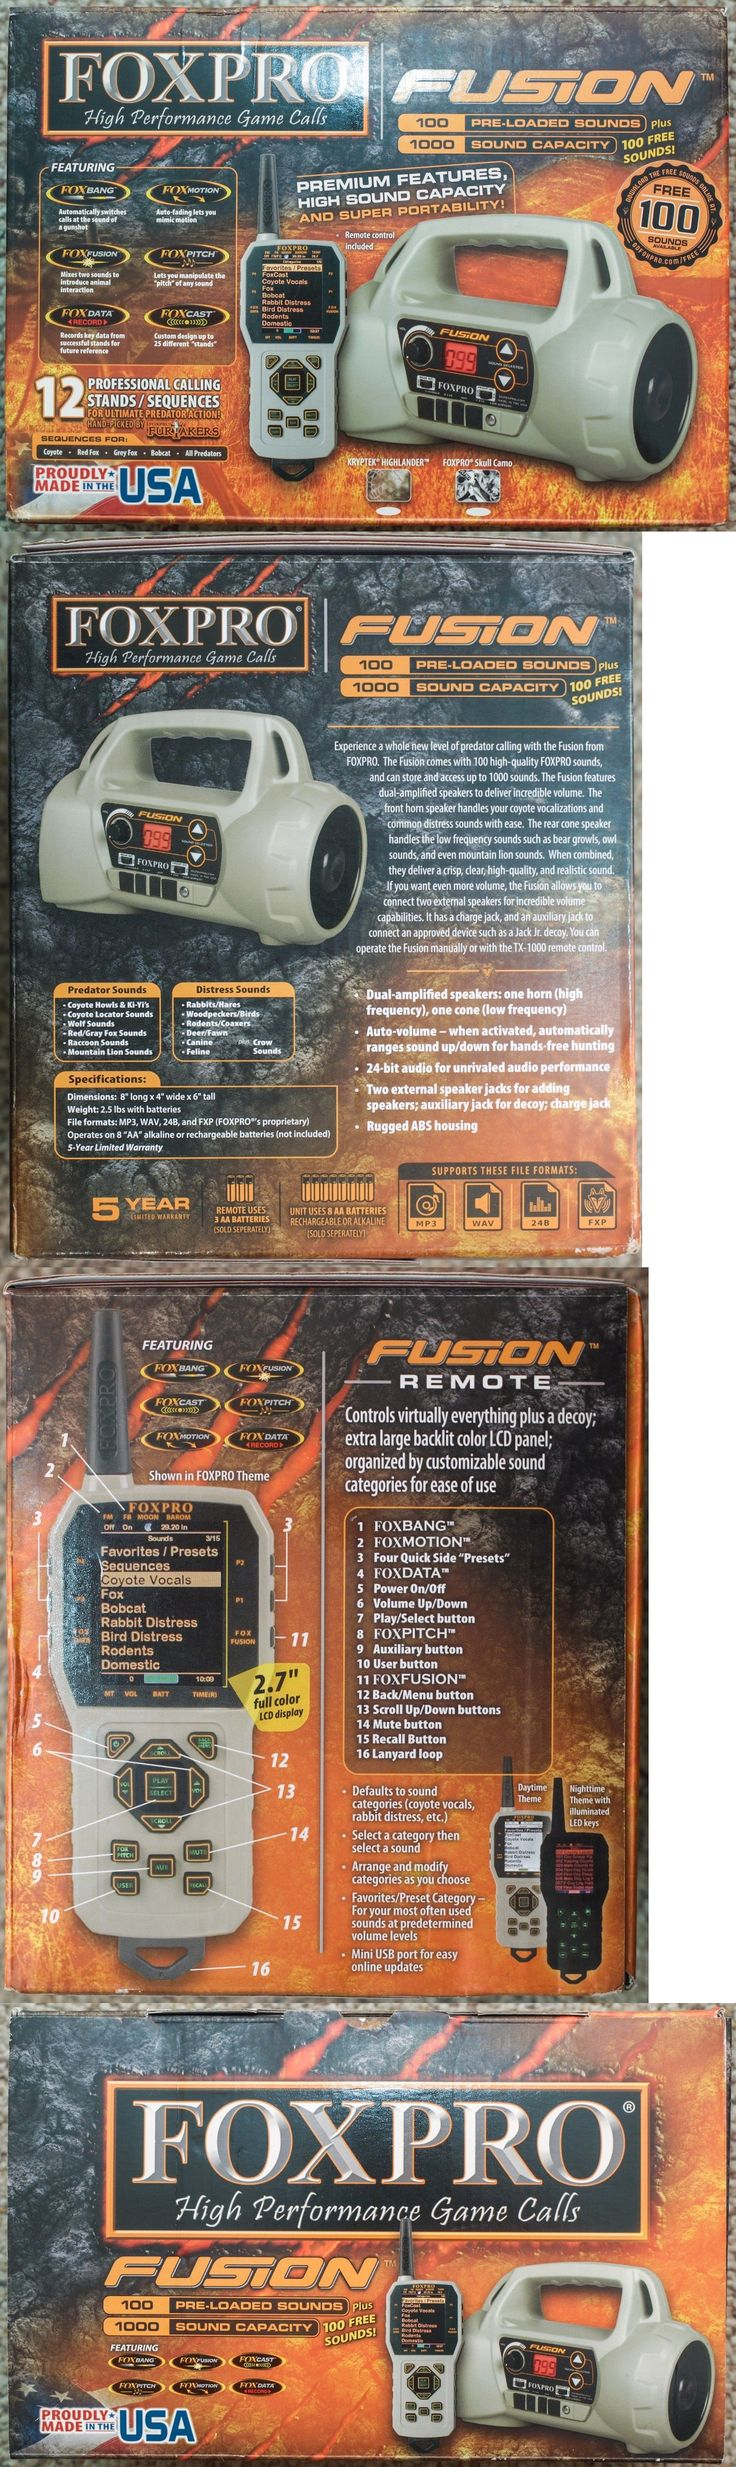 Game Calls 36252: *New* Foxpro Fusion Electronic Predator Coyote Game Call + Tx-1000 Remote - Tan -> BUY IT NOW ONLY: $349.99 on eBay!